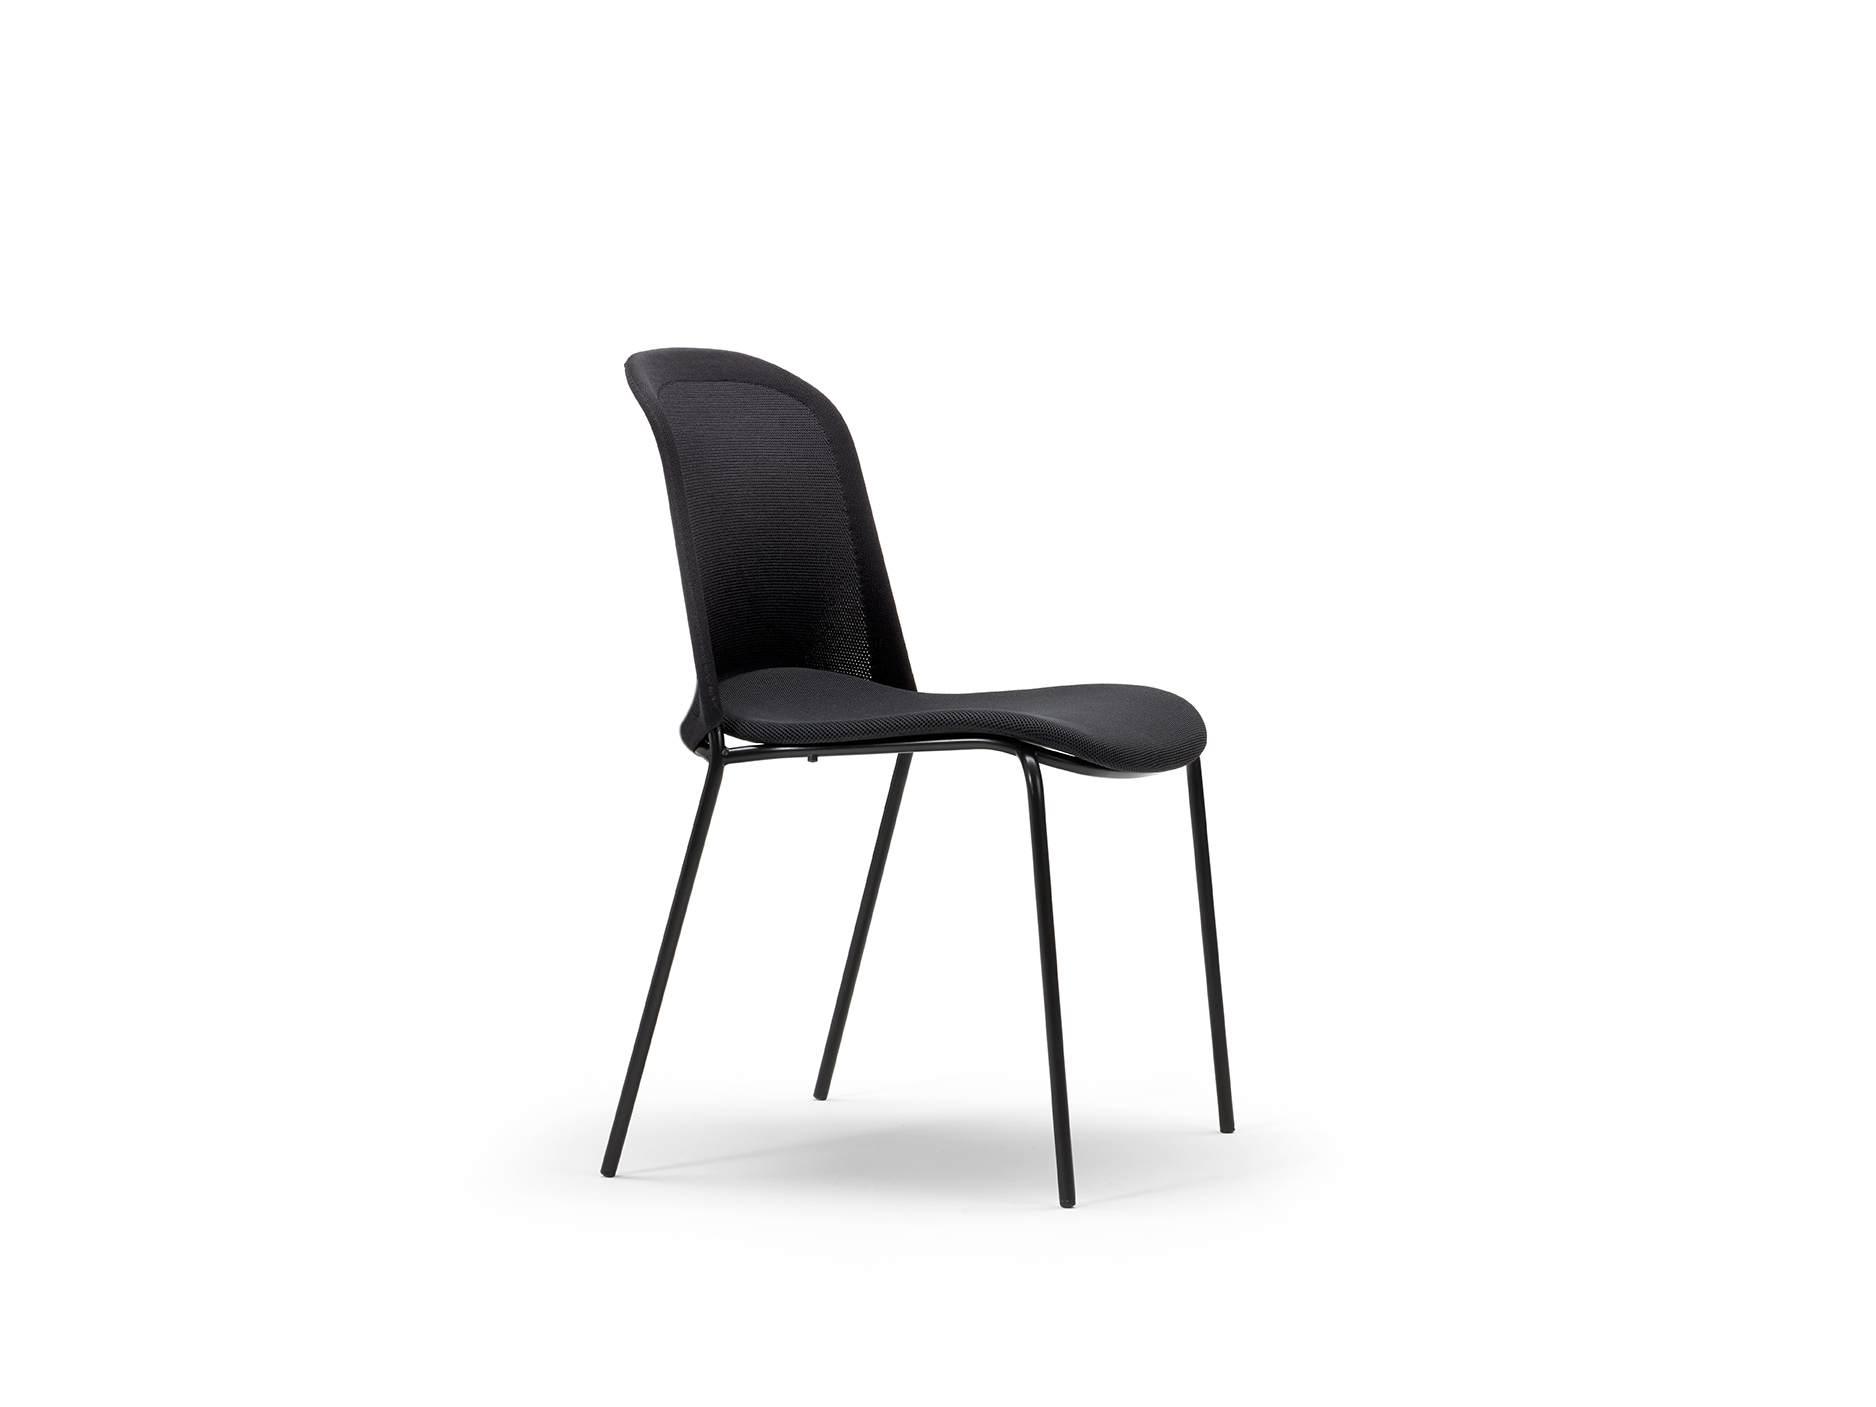 Sheer chair for Offecct - Exhibiting at Offecct, Milan Furniture Fair, Hall 20 Stand F28